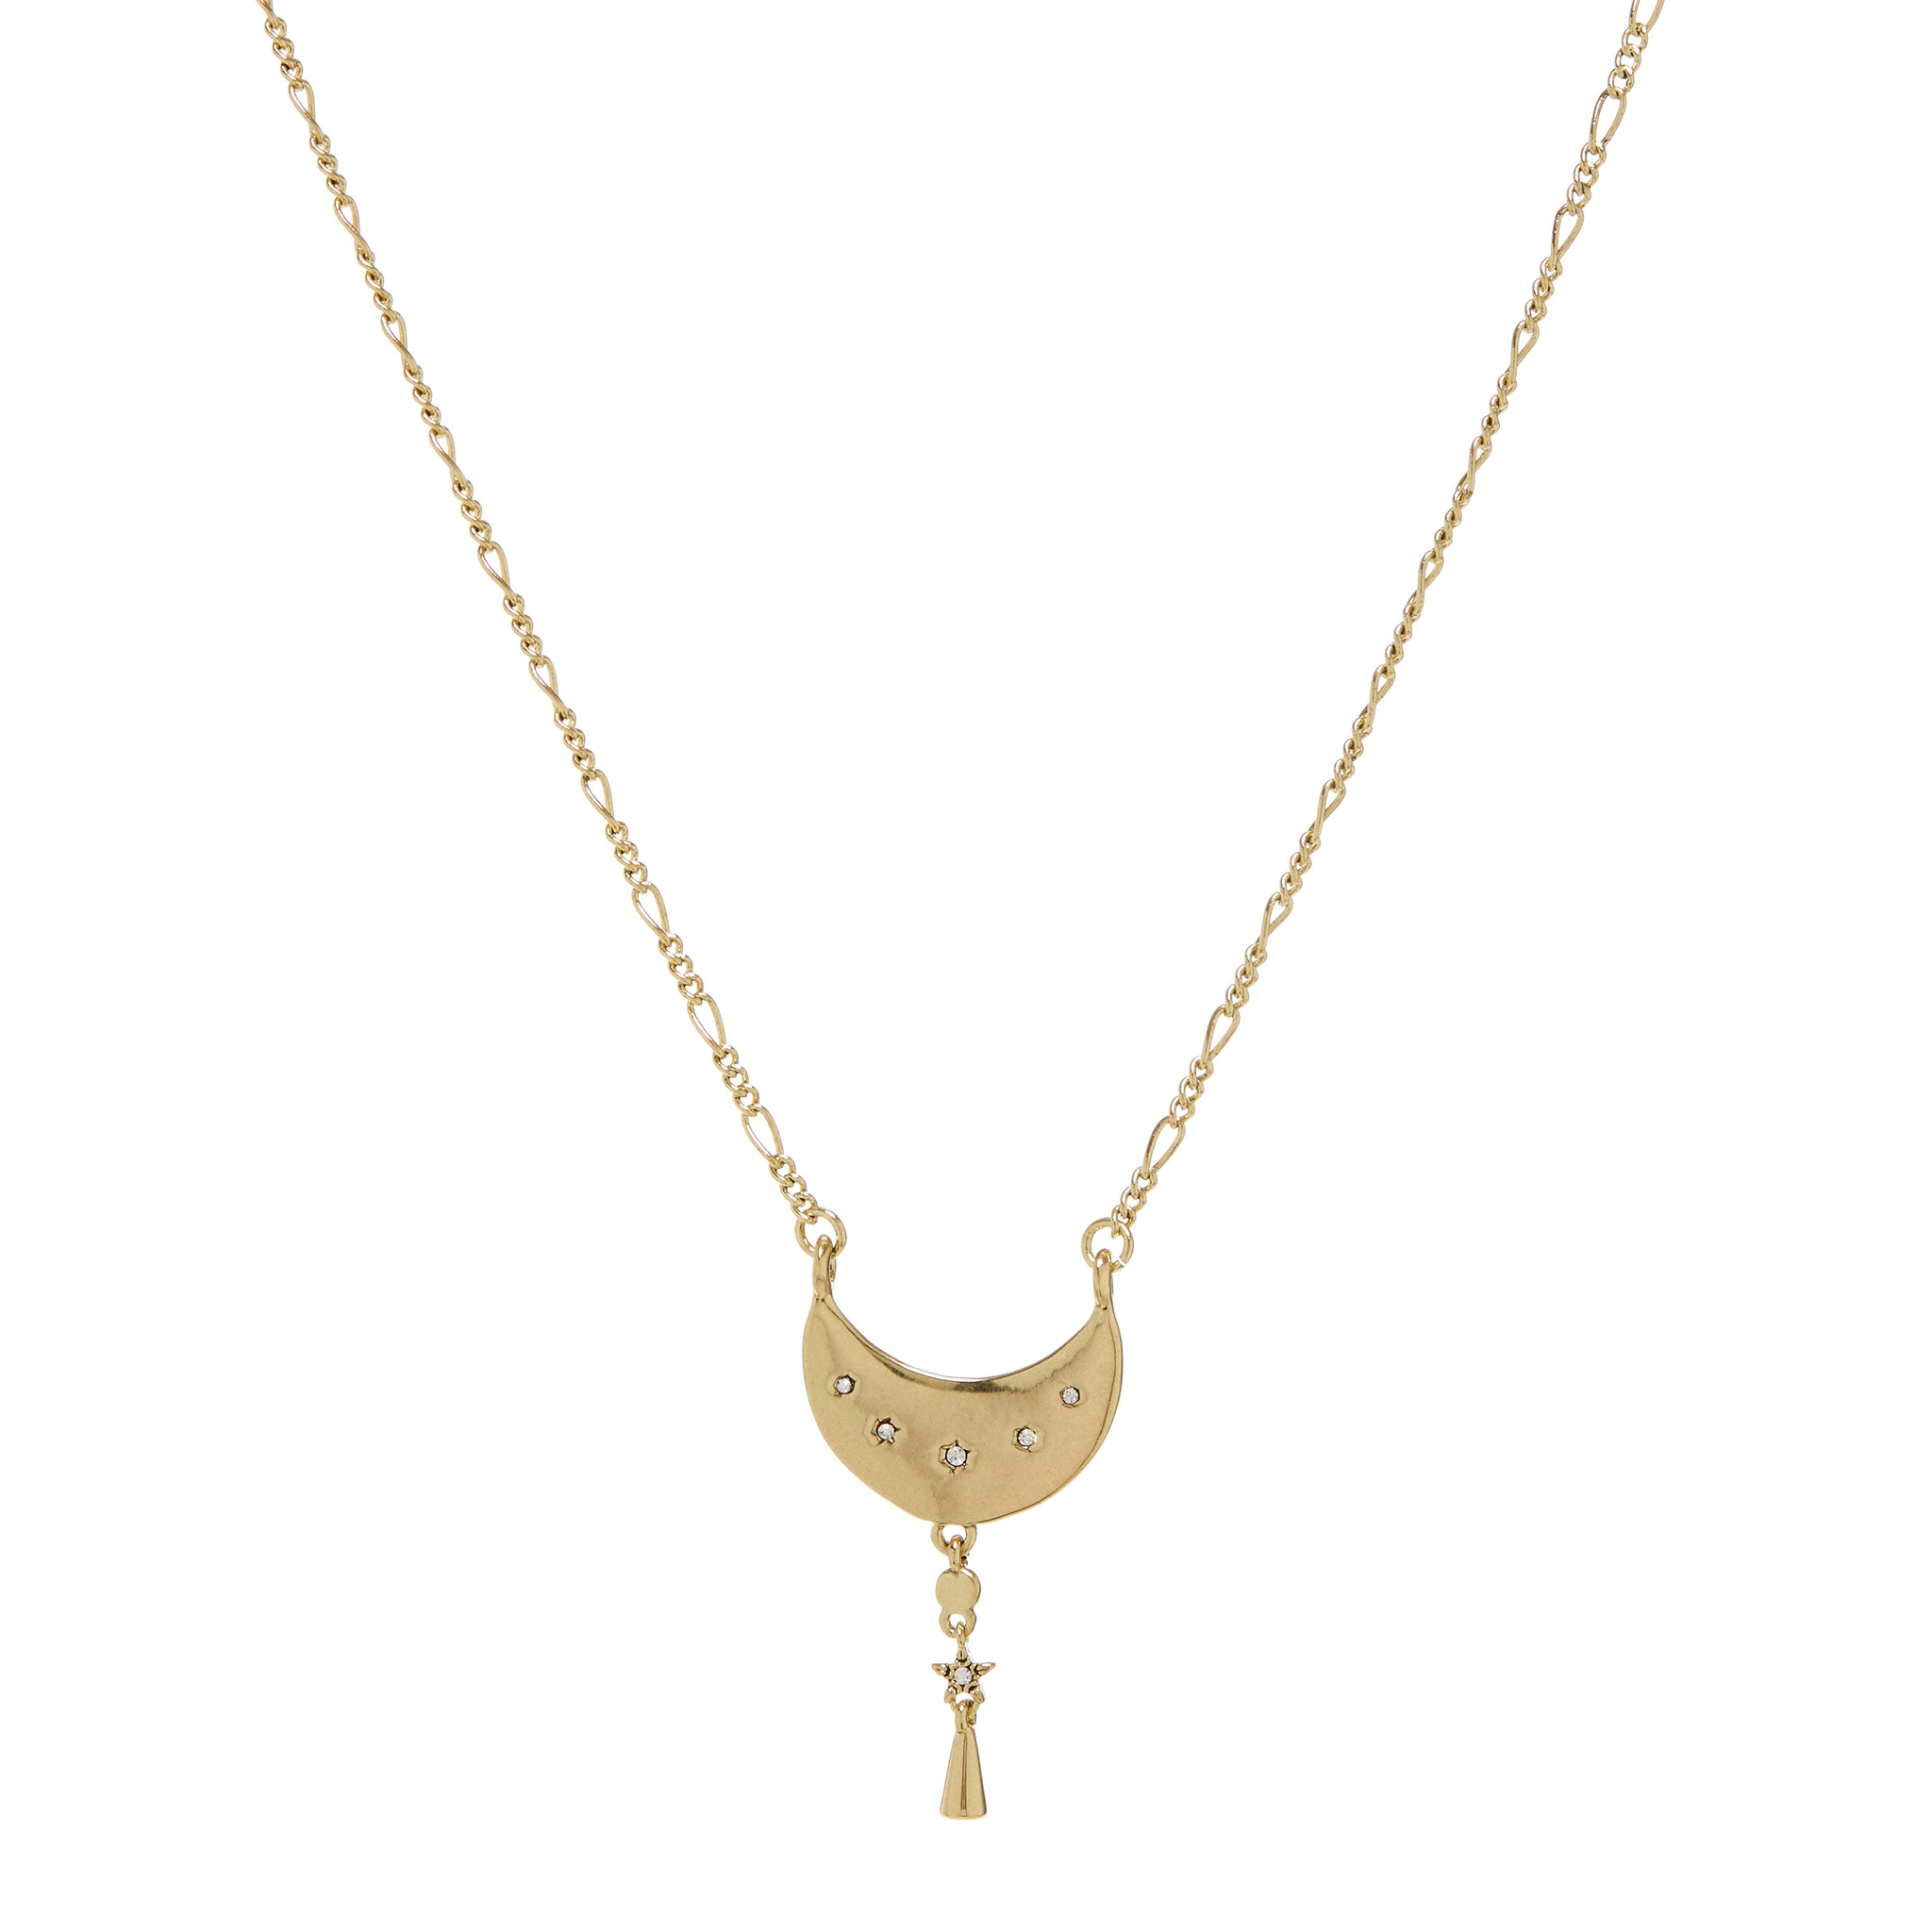 LUV AJ - CELESTIAL CHARM NECKLACE